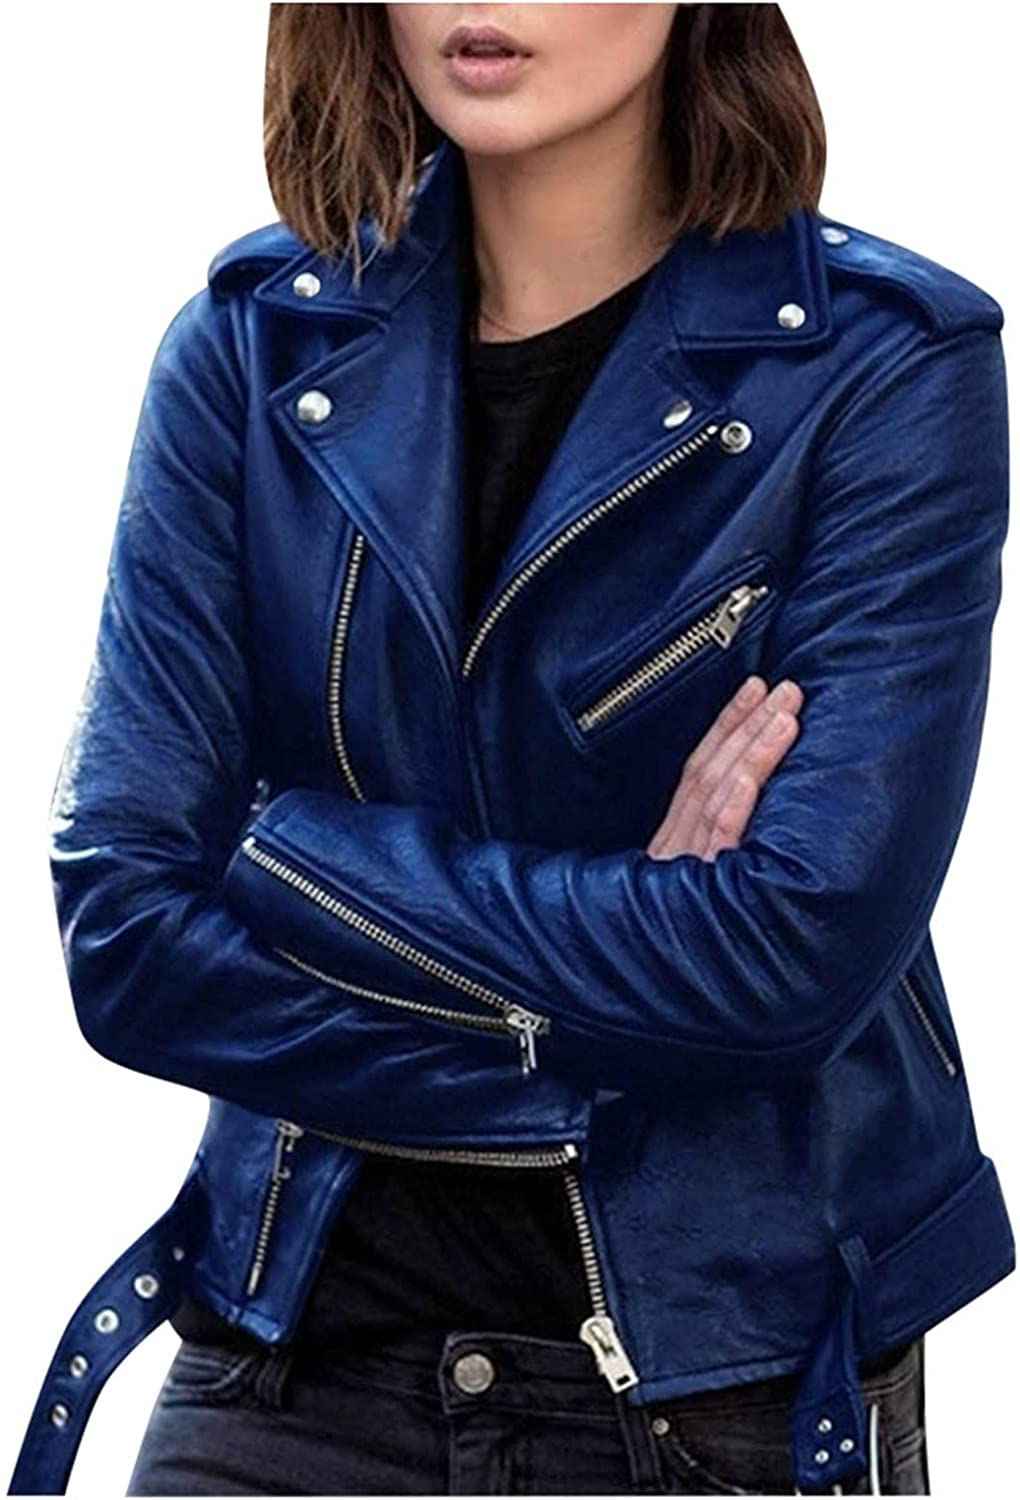 Womens Motorcycle Jacket Cool Faux Leather Short Coat Long Sleeve Zipper Coat Splicing Fit Leather Jackets